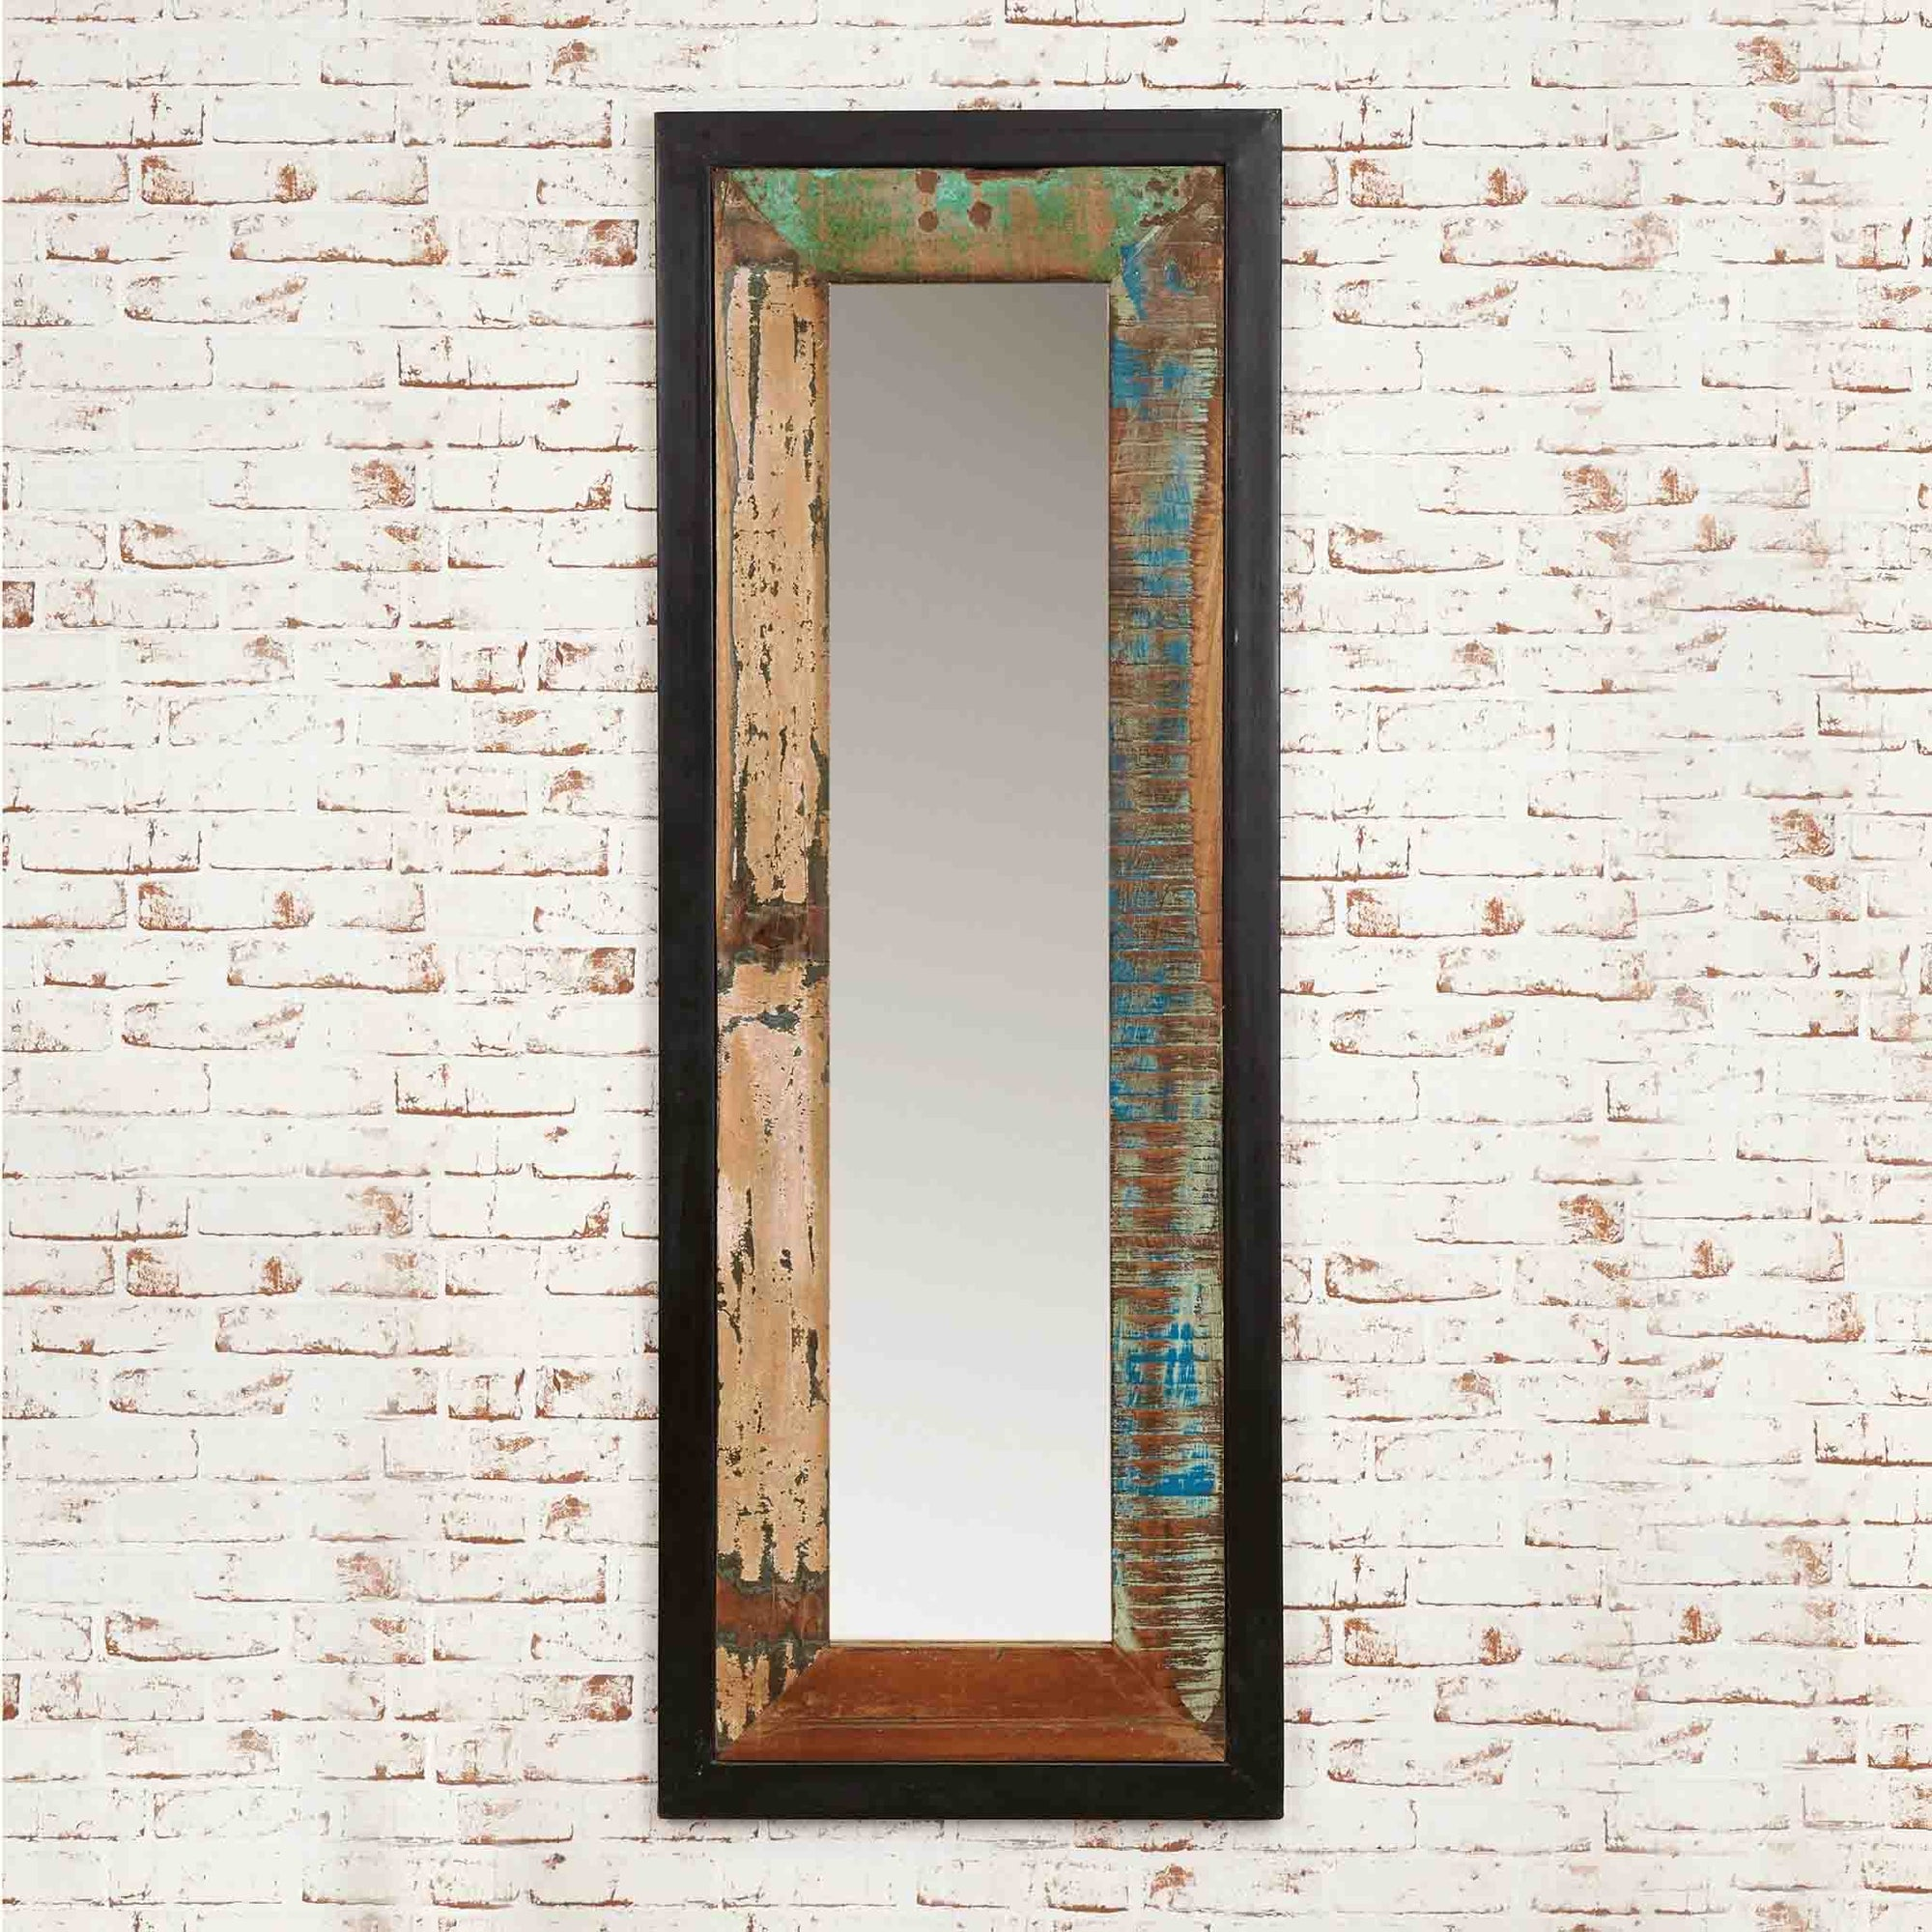 The Urban Chic Industrial Reclaimed Wood Long Mirror from Roseland Furniture